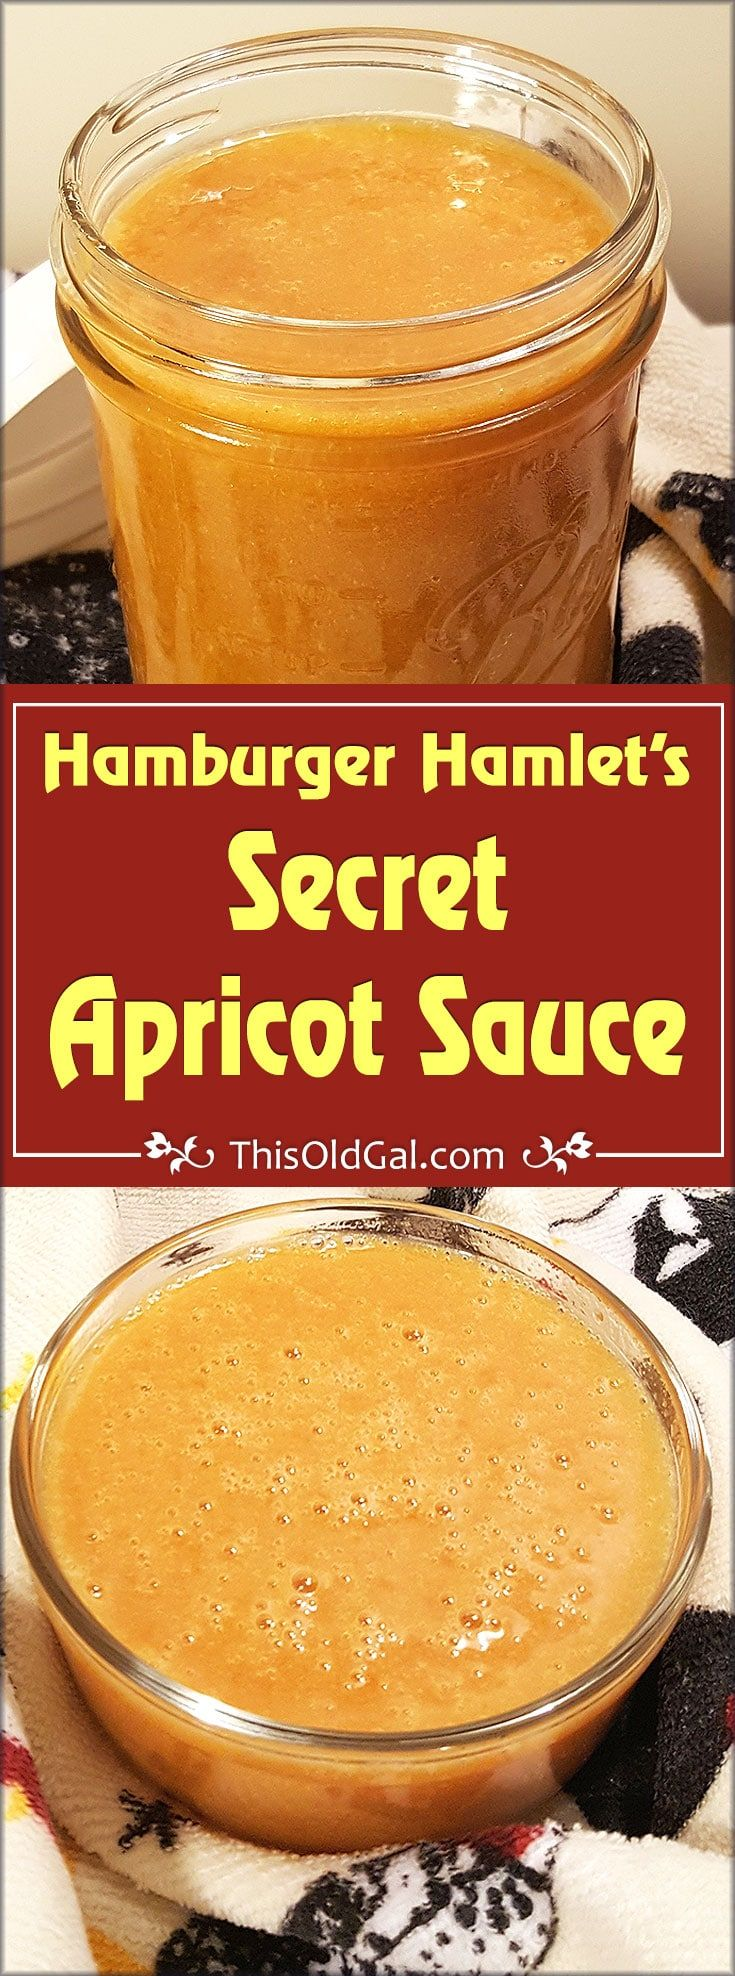 Hamburger Hamlet's Secret Apricot Sauce is a sweet and tangy dipping sauce for their Famous Chicken Wings Platter, Fried Zucchini, Egg Rolls and more. via @thisoldgalcooks